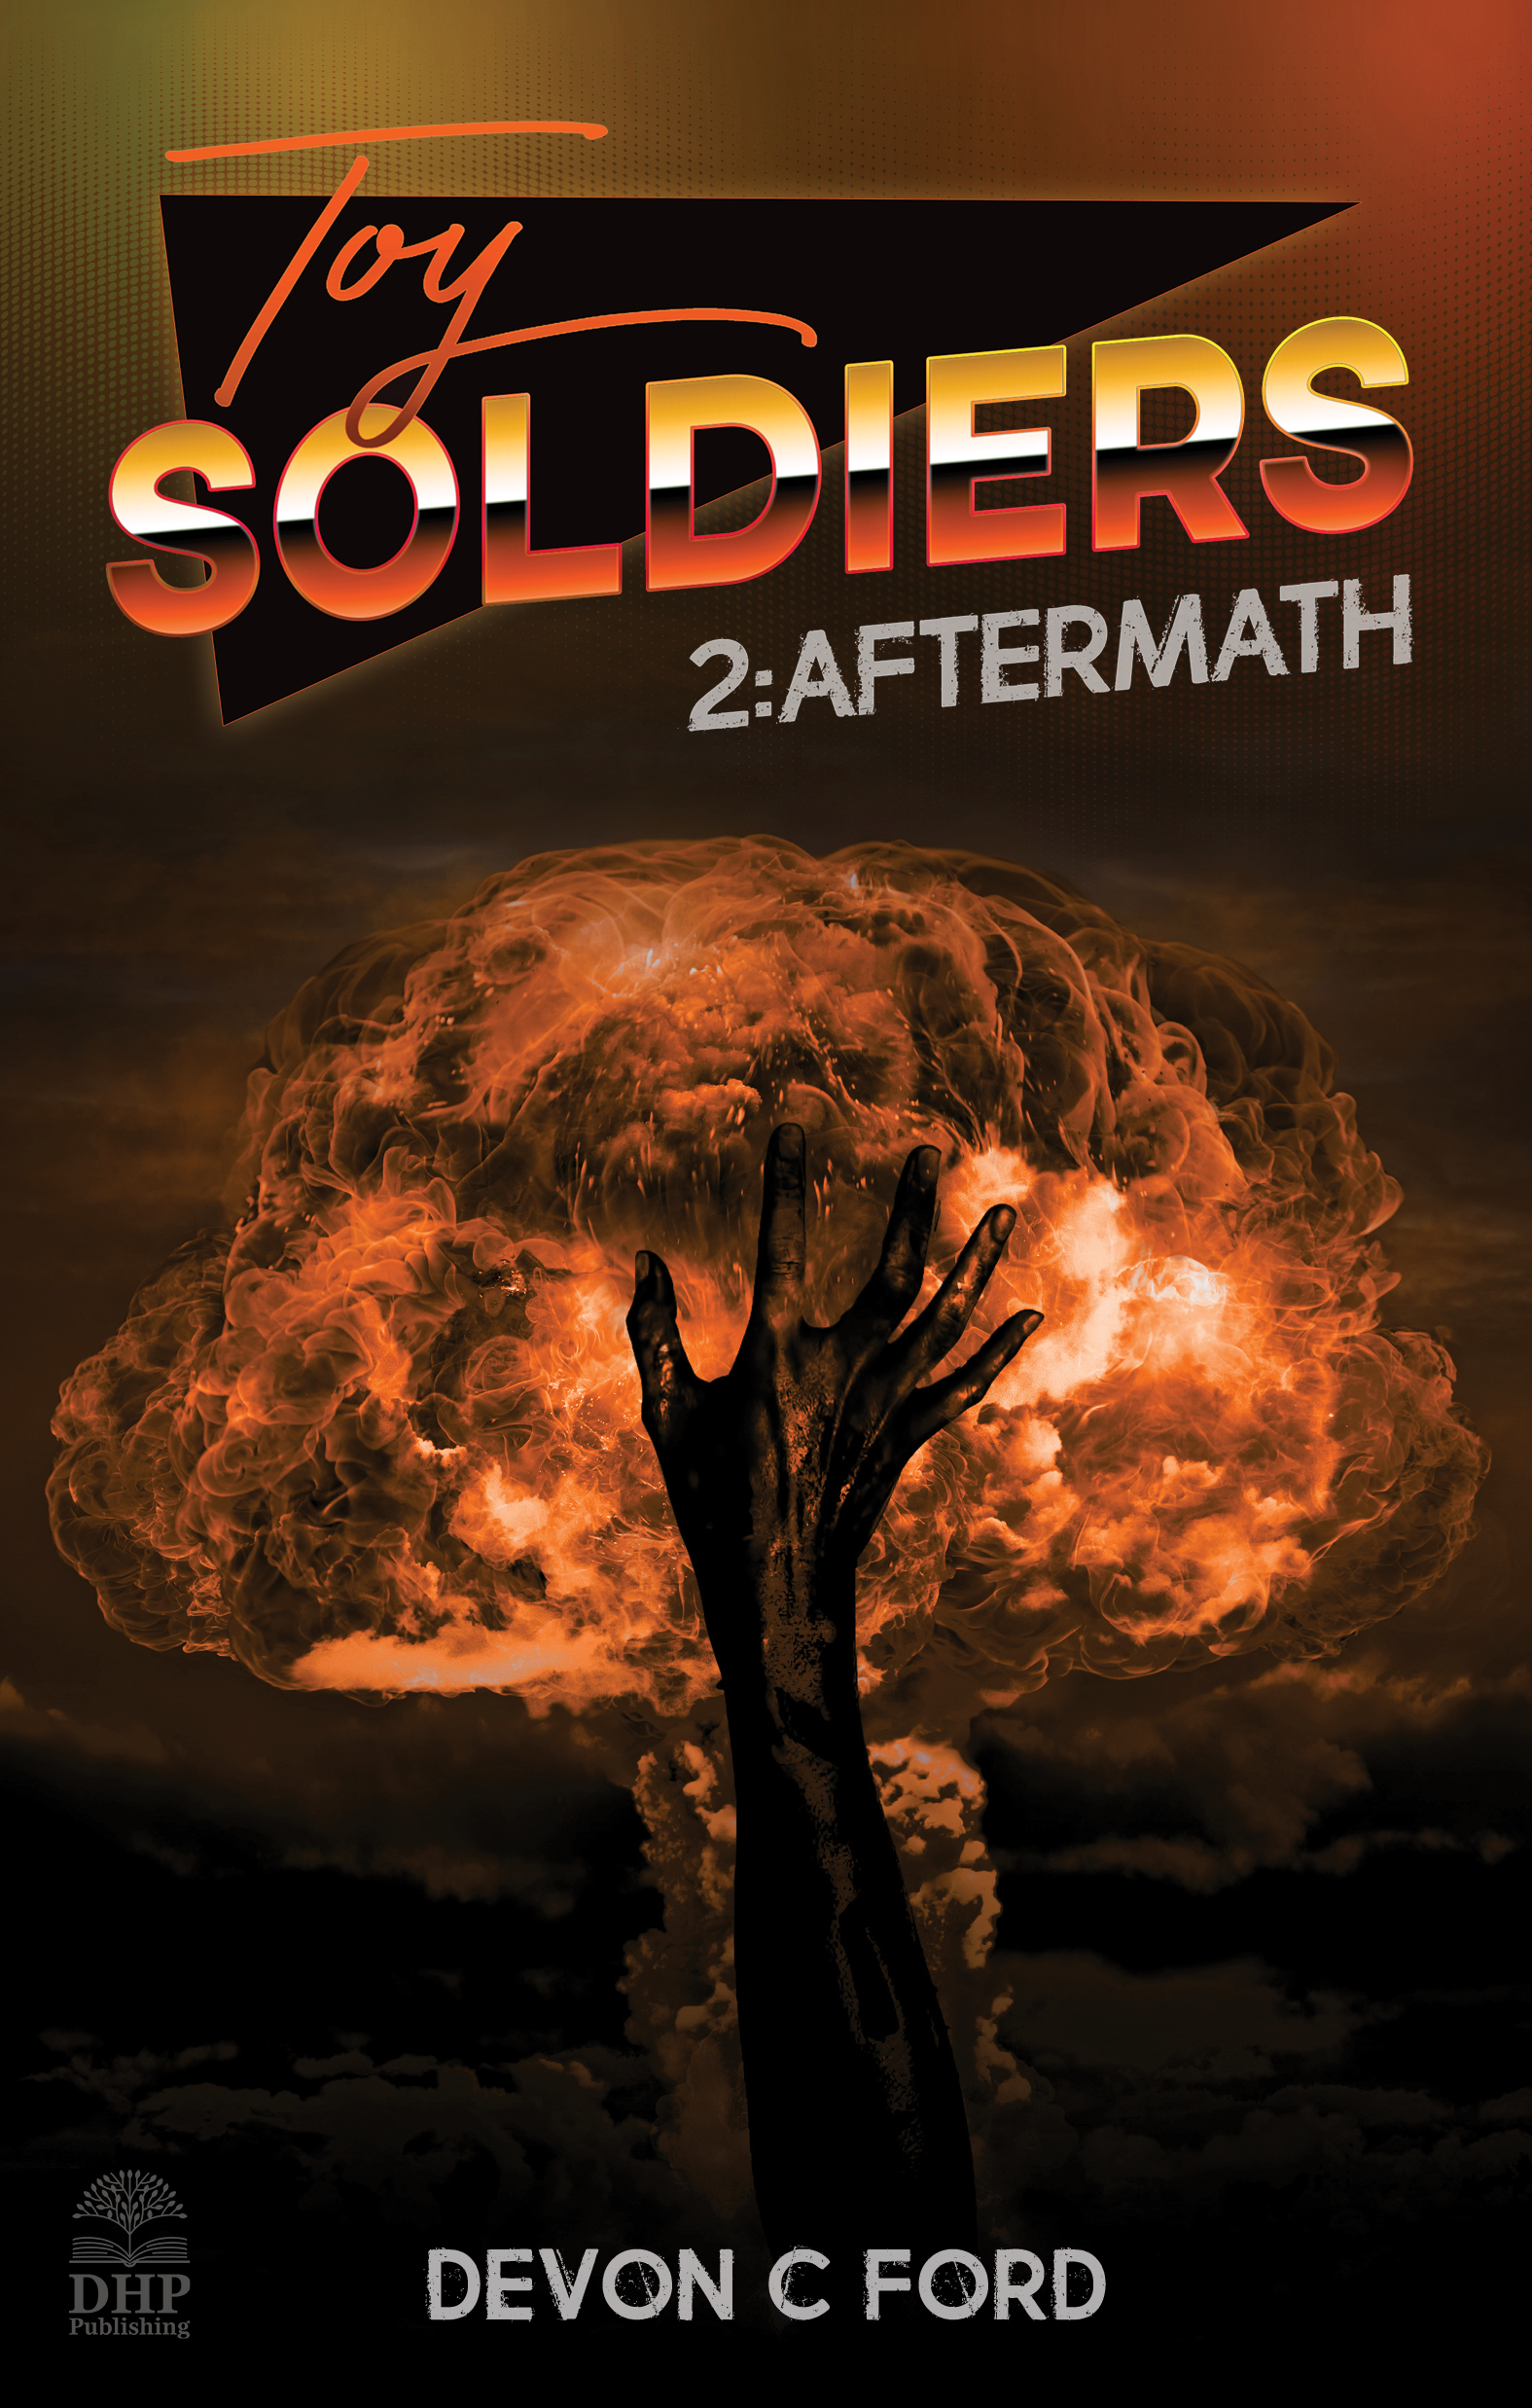 Toy Soldiers 2: Aftermath